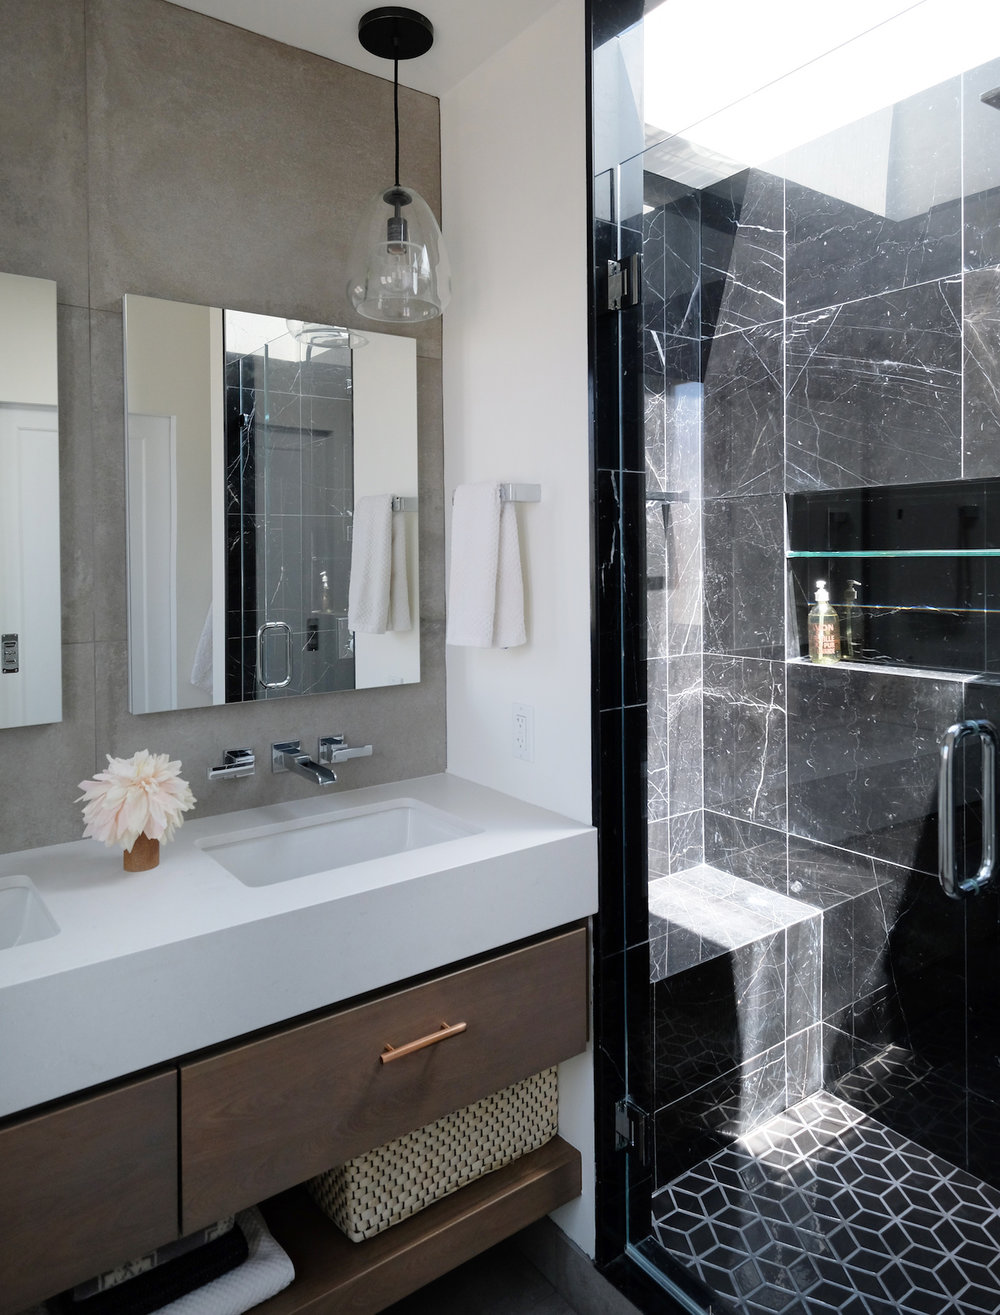 custom wood floating vanity with double sinks and mirrors and black marble tile shower and mosaic flooring.jpg